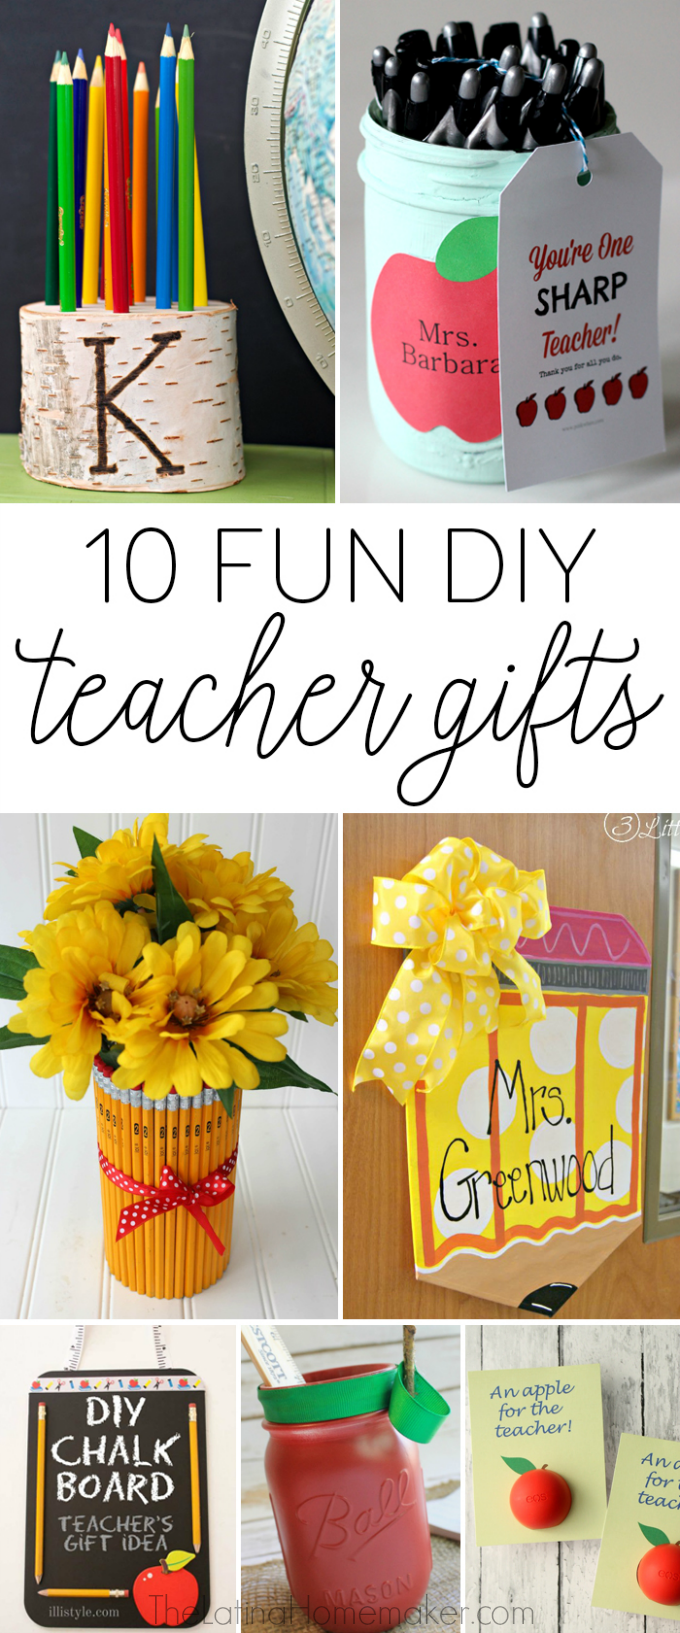 A round-up of 10 fun DIY teacher gift ideas that are fun, inexpensive and thoughtful. I love these ideas!